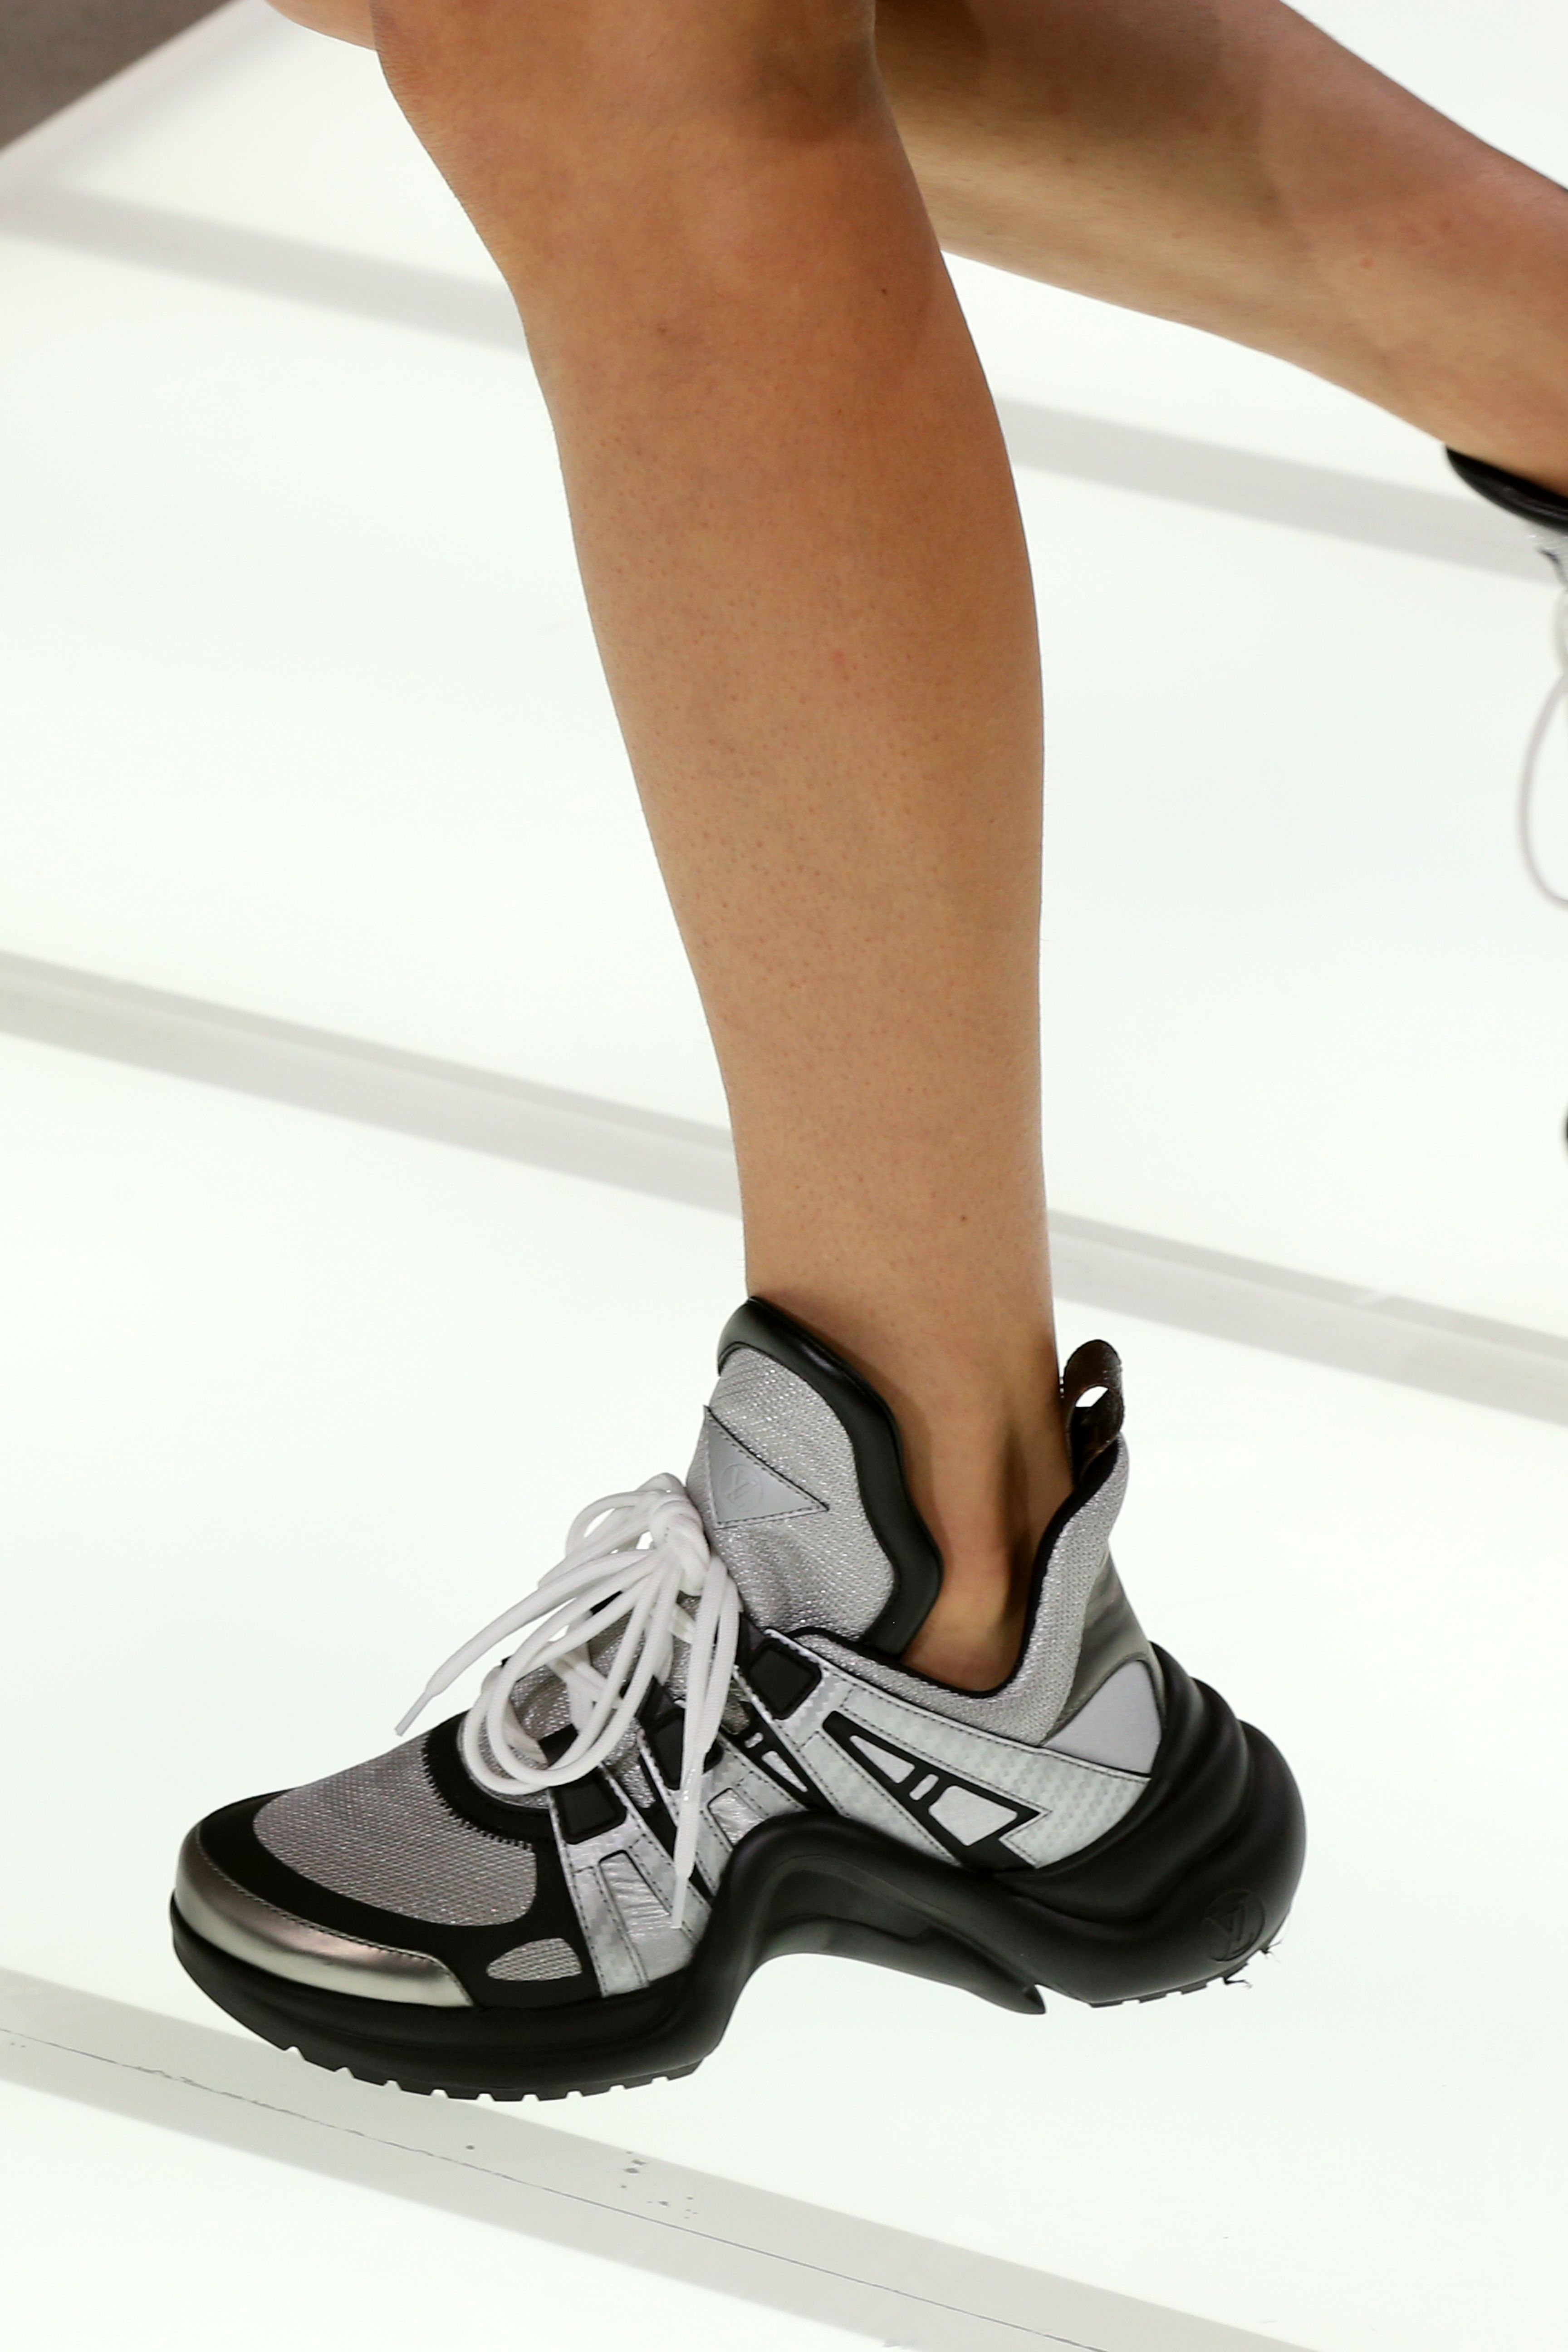 Sneakers From The Louis Vuitton Spring Summer 2018 Show By Nicolas